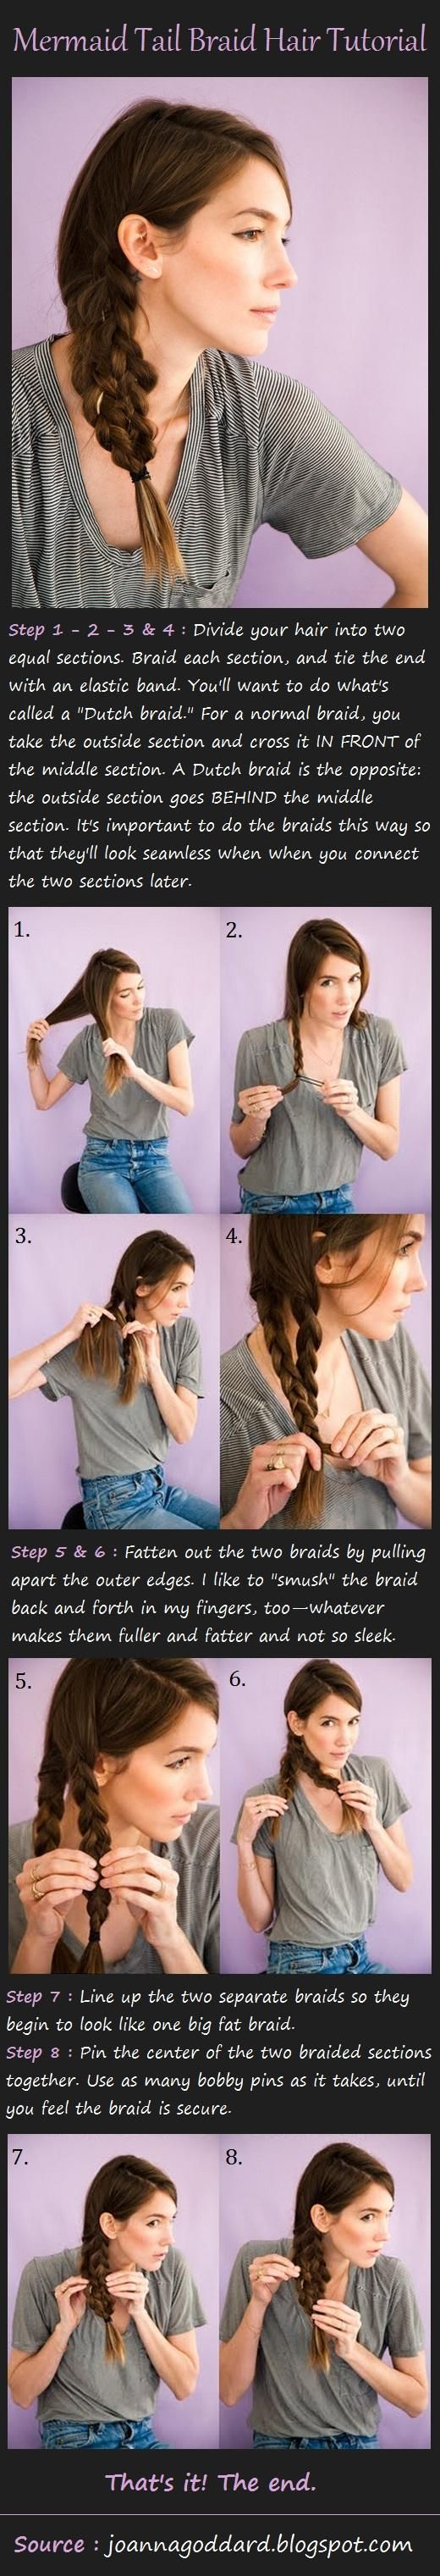 Mermaid Tail Braid Tutorial....or just take 3 braids and braid them together. Looks better